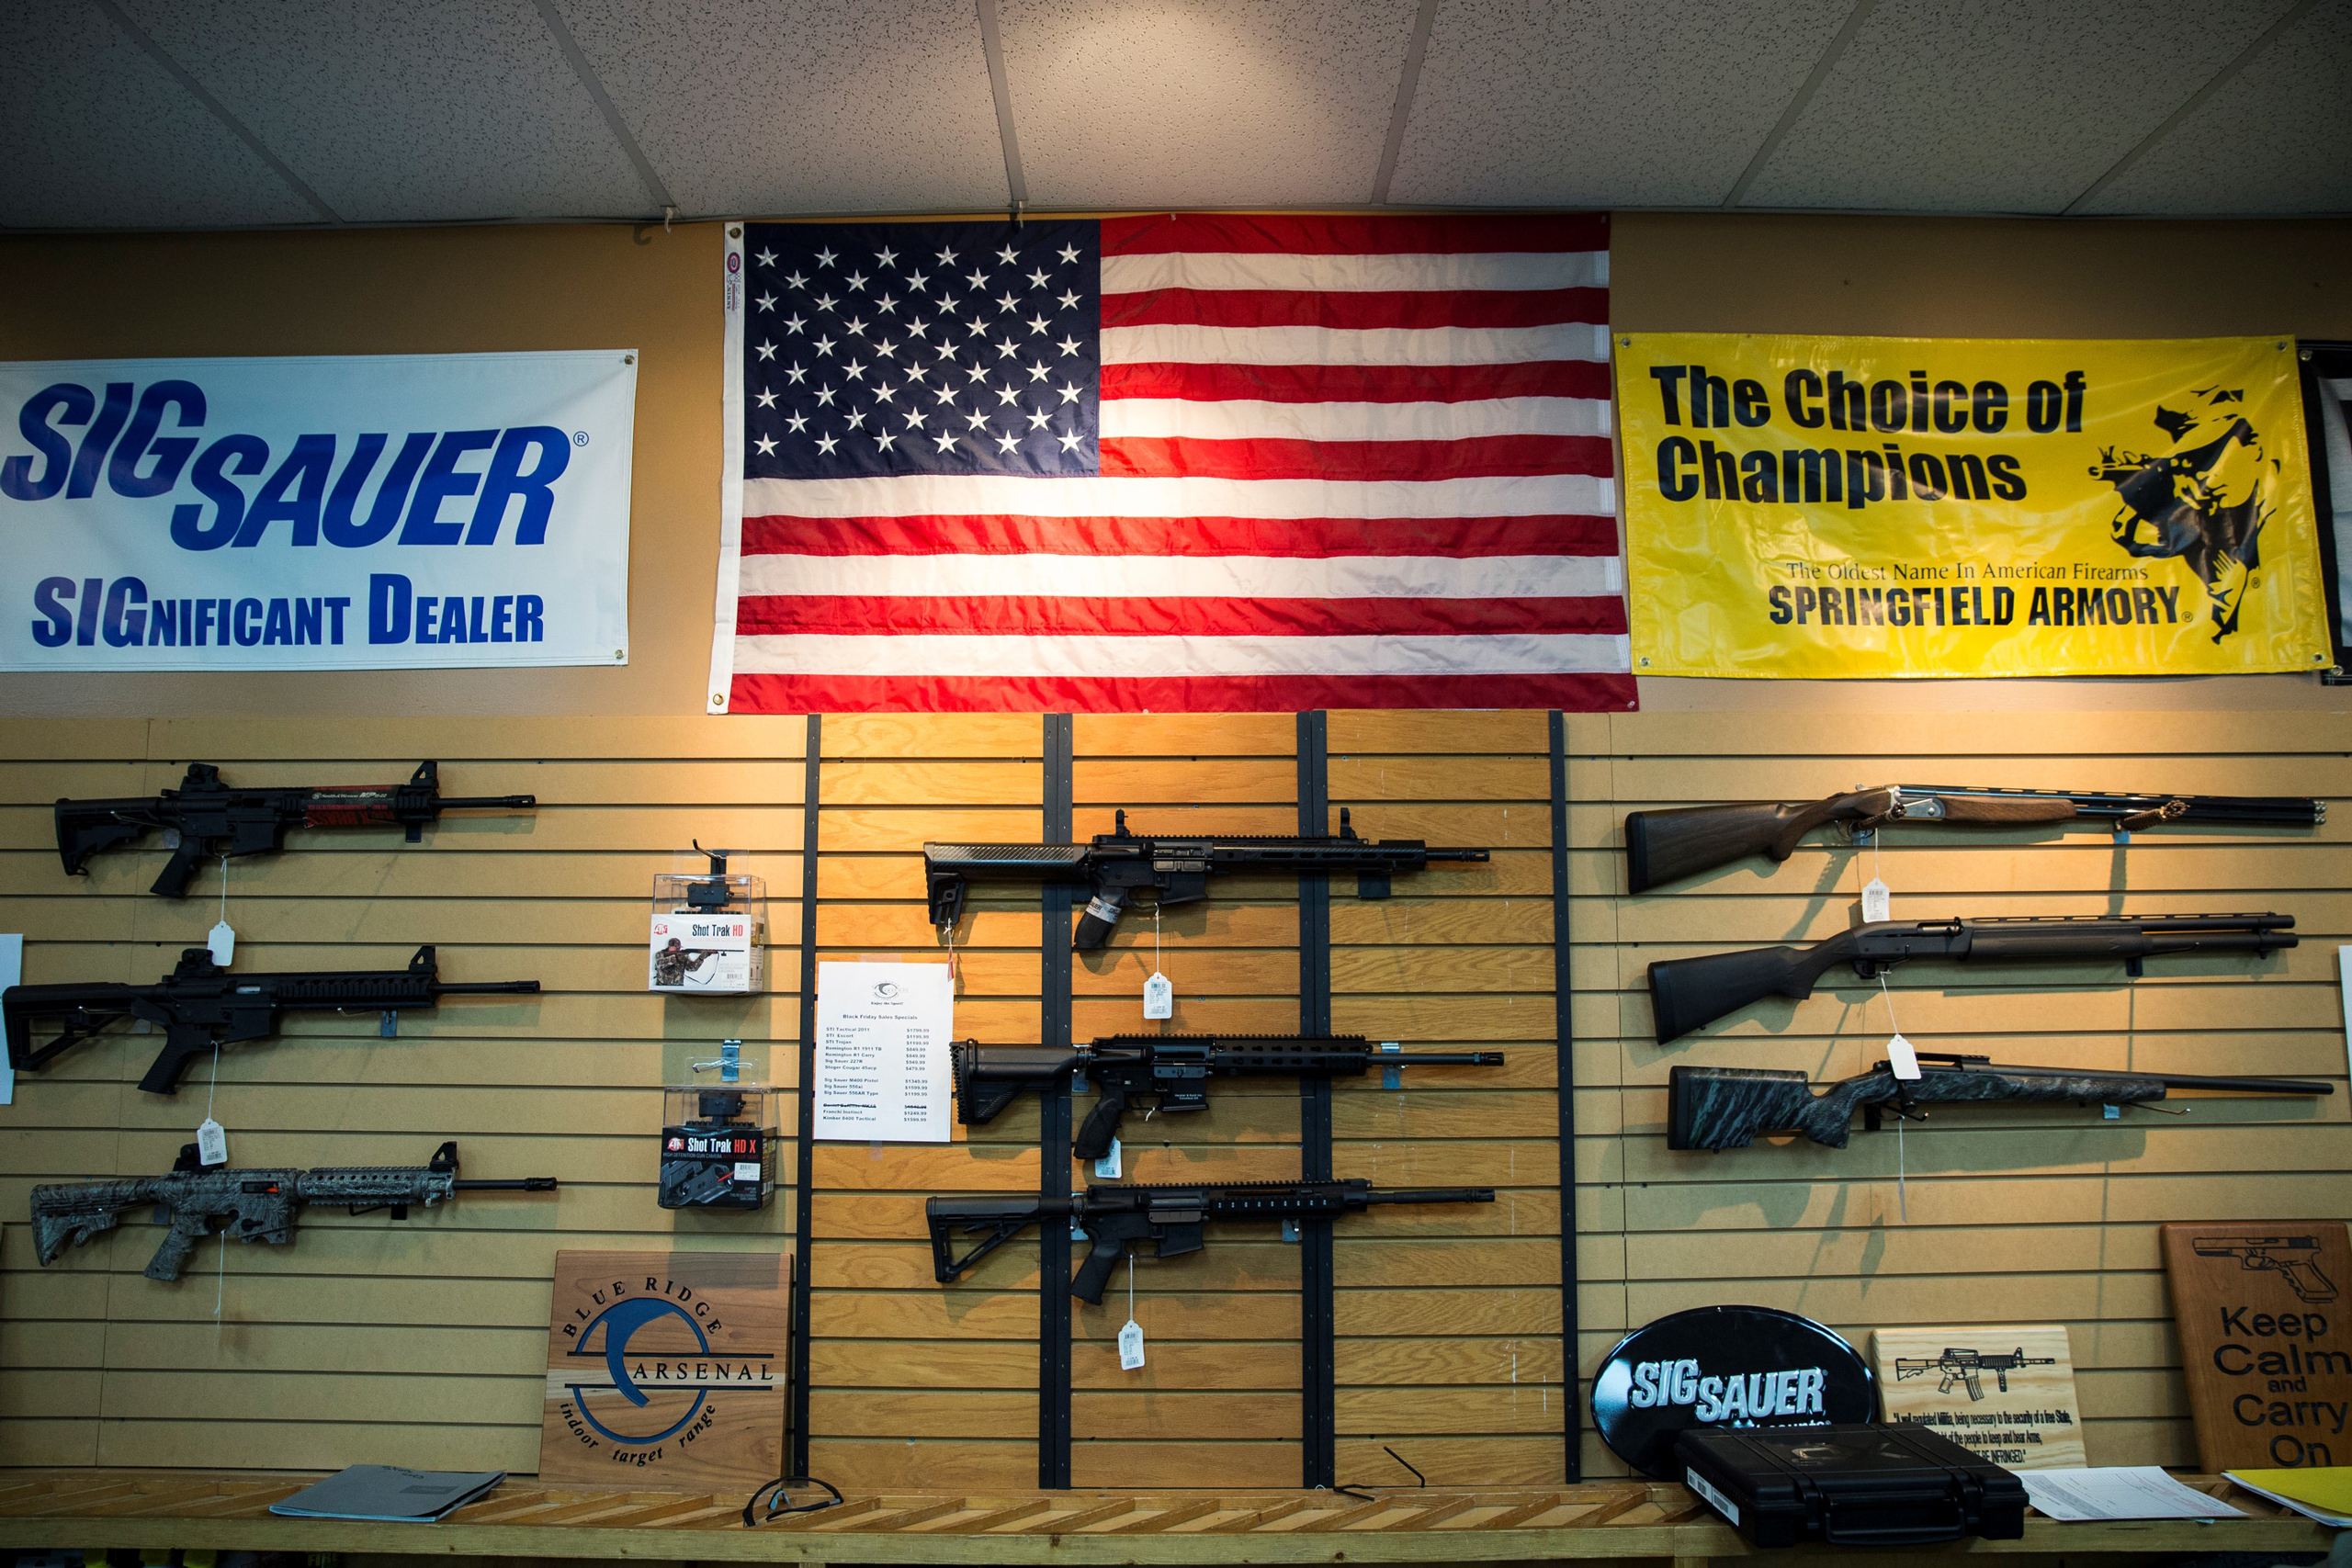 AR-15 style rifles and shotguns for sale at Blue Ridge Arsenal in Chantilly, Va., USA on Jan. 9, 2015.